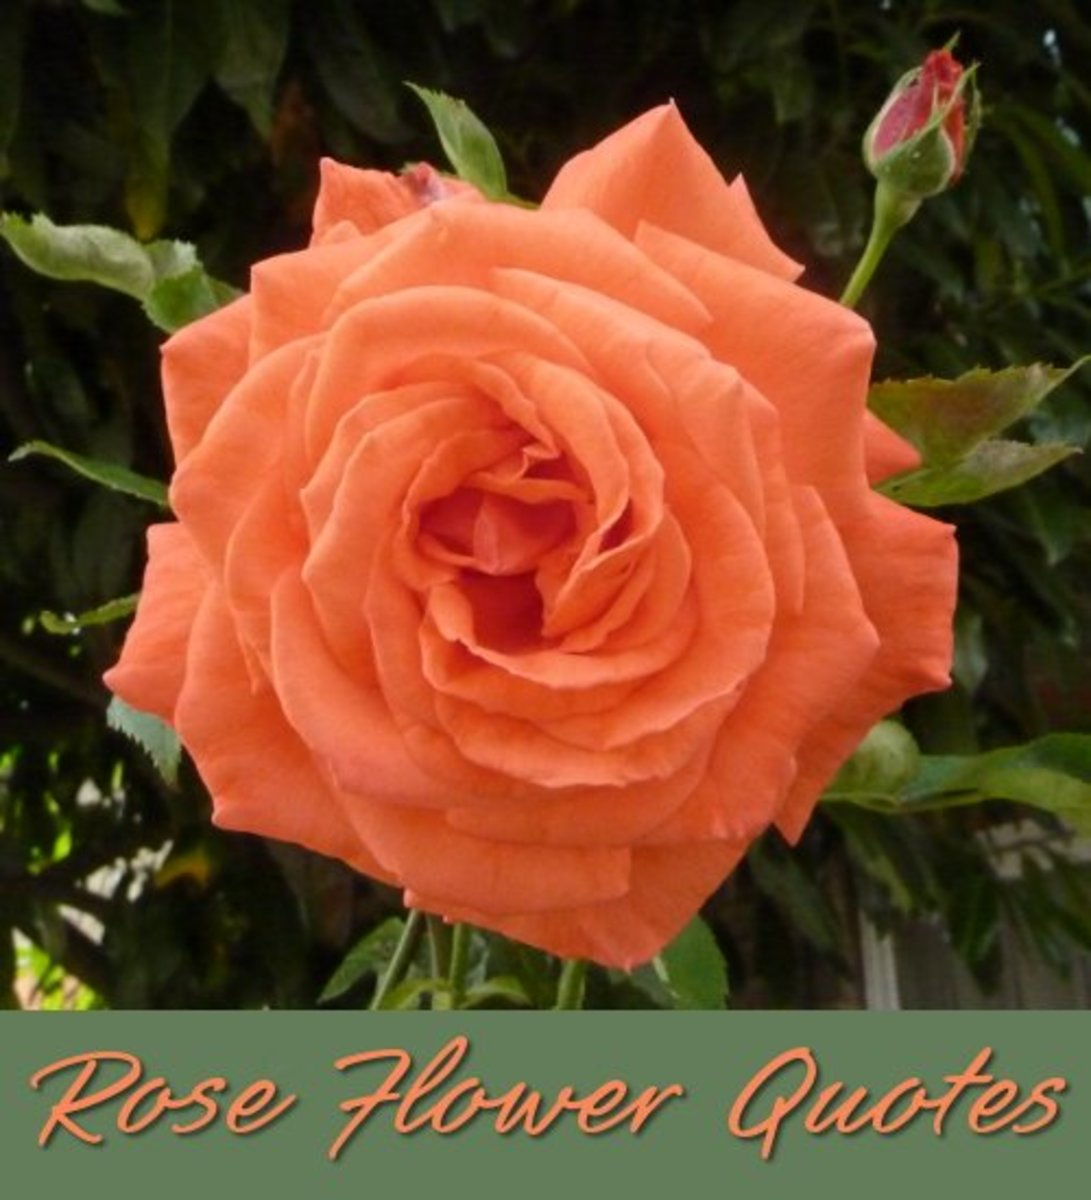 Rose flower quotations and sentiments.